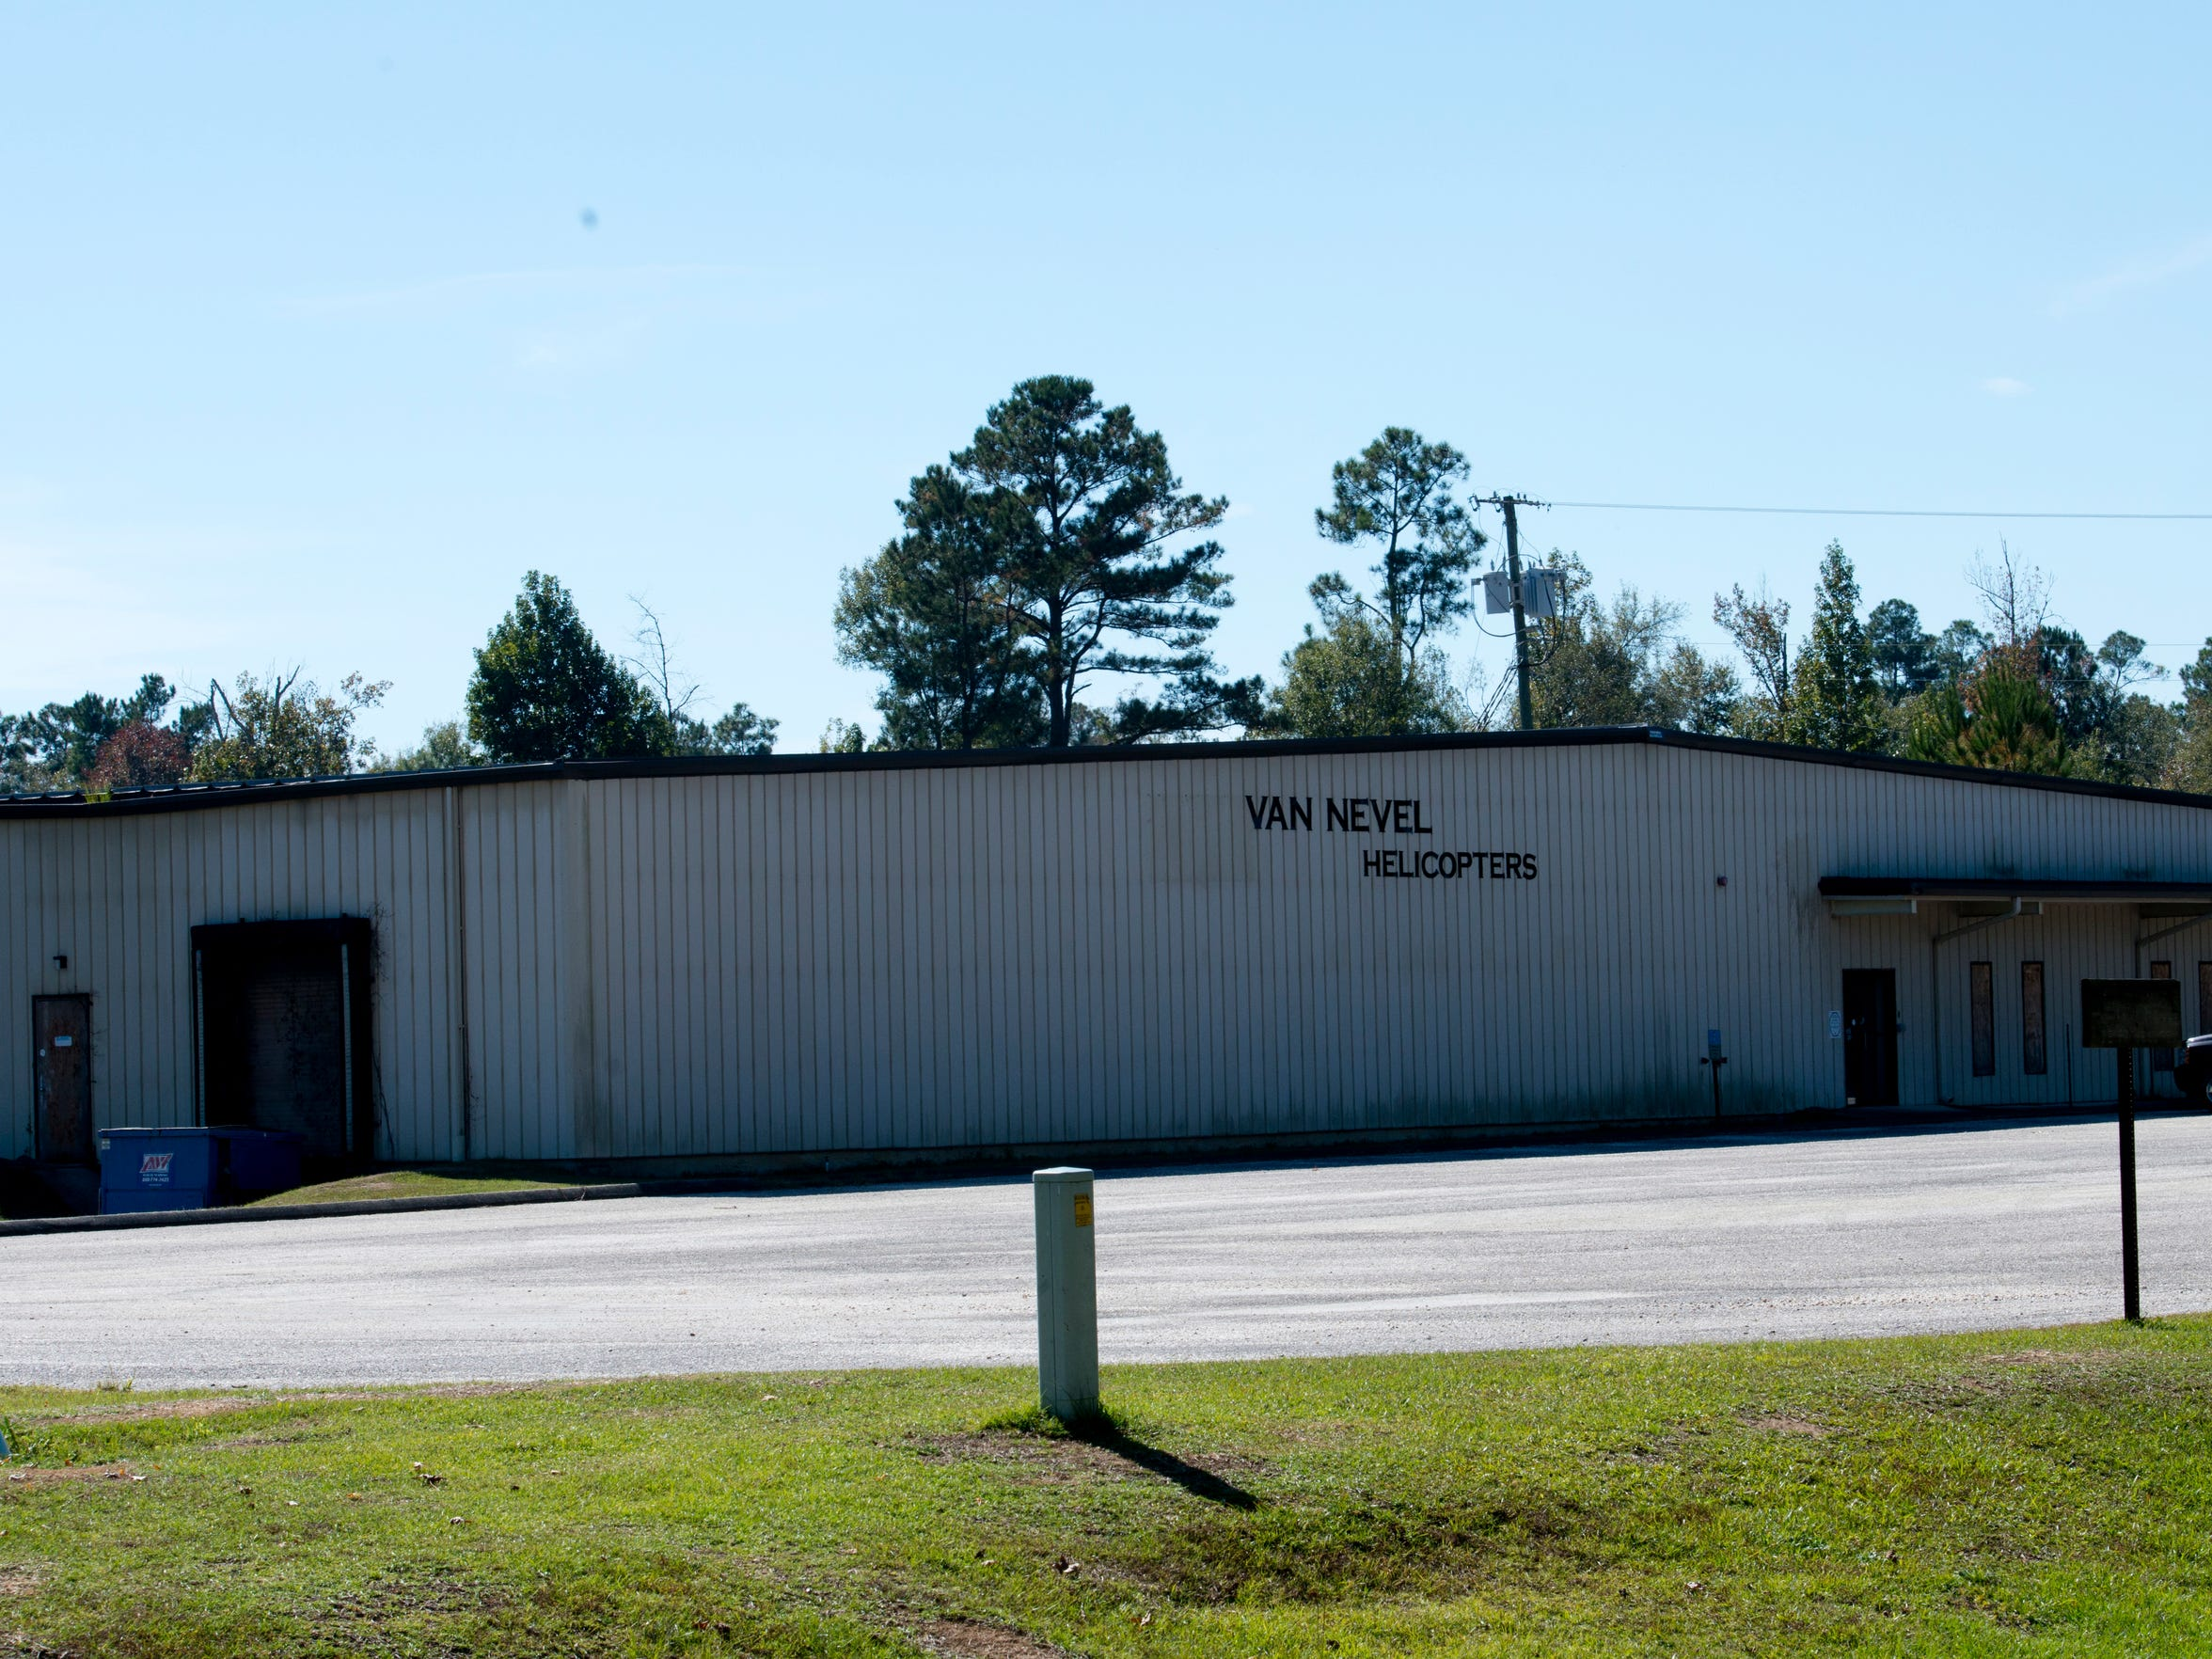 The former site of the Brown/Van Nevel Helicopters facility now closed in Century.